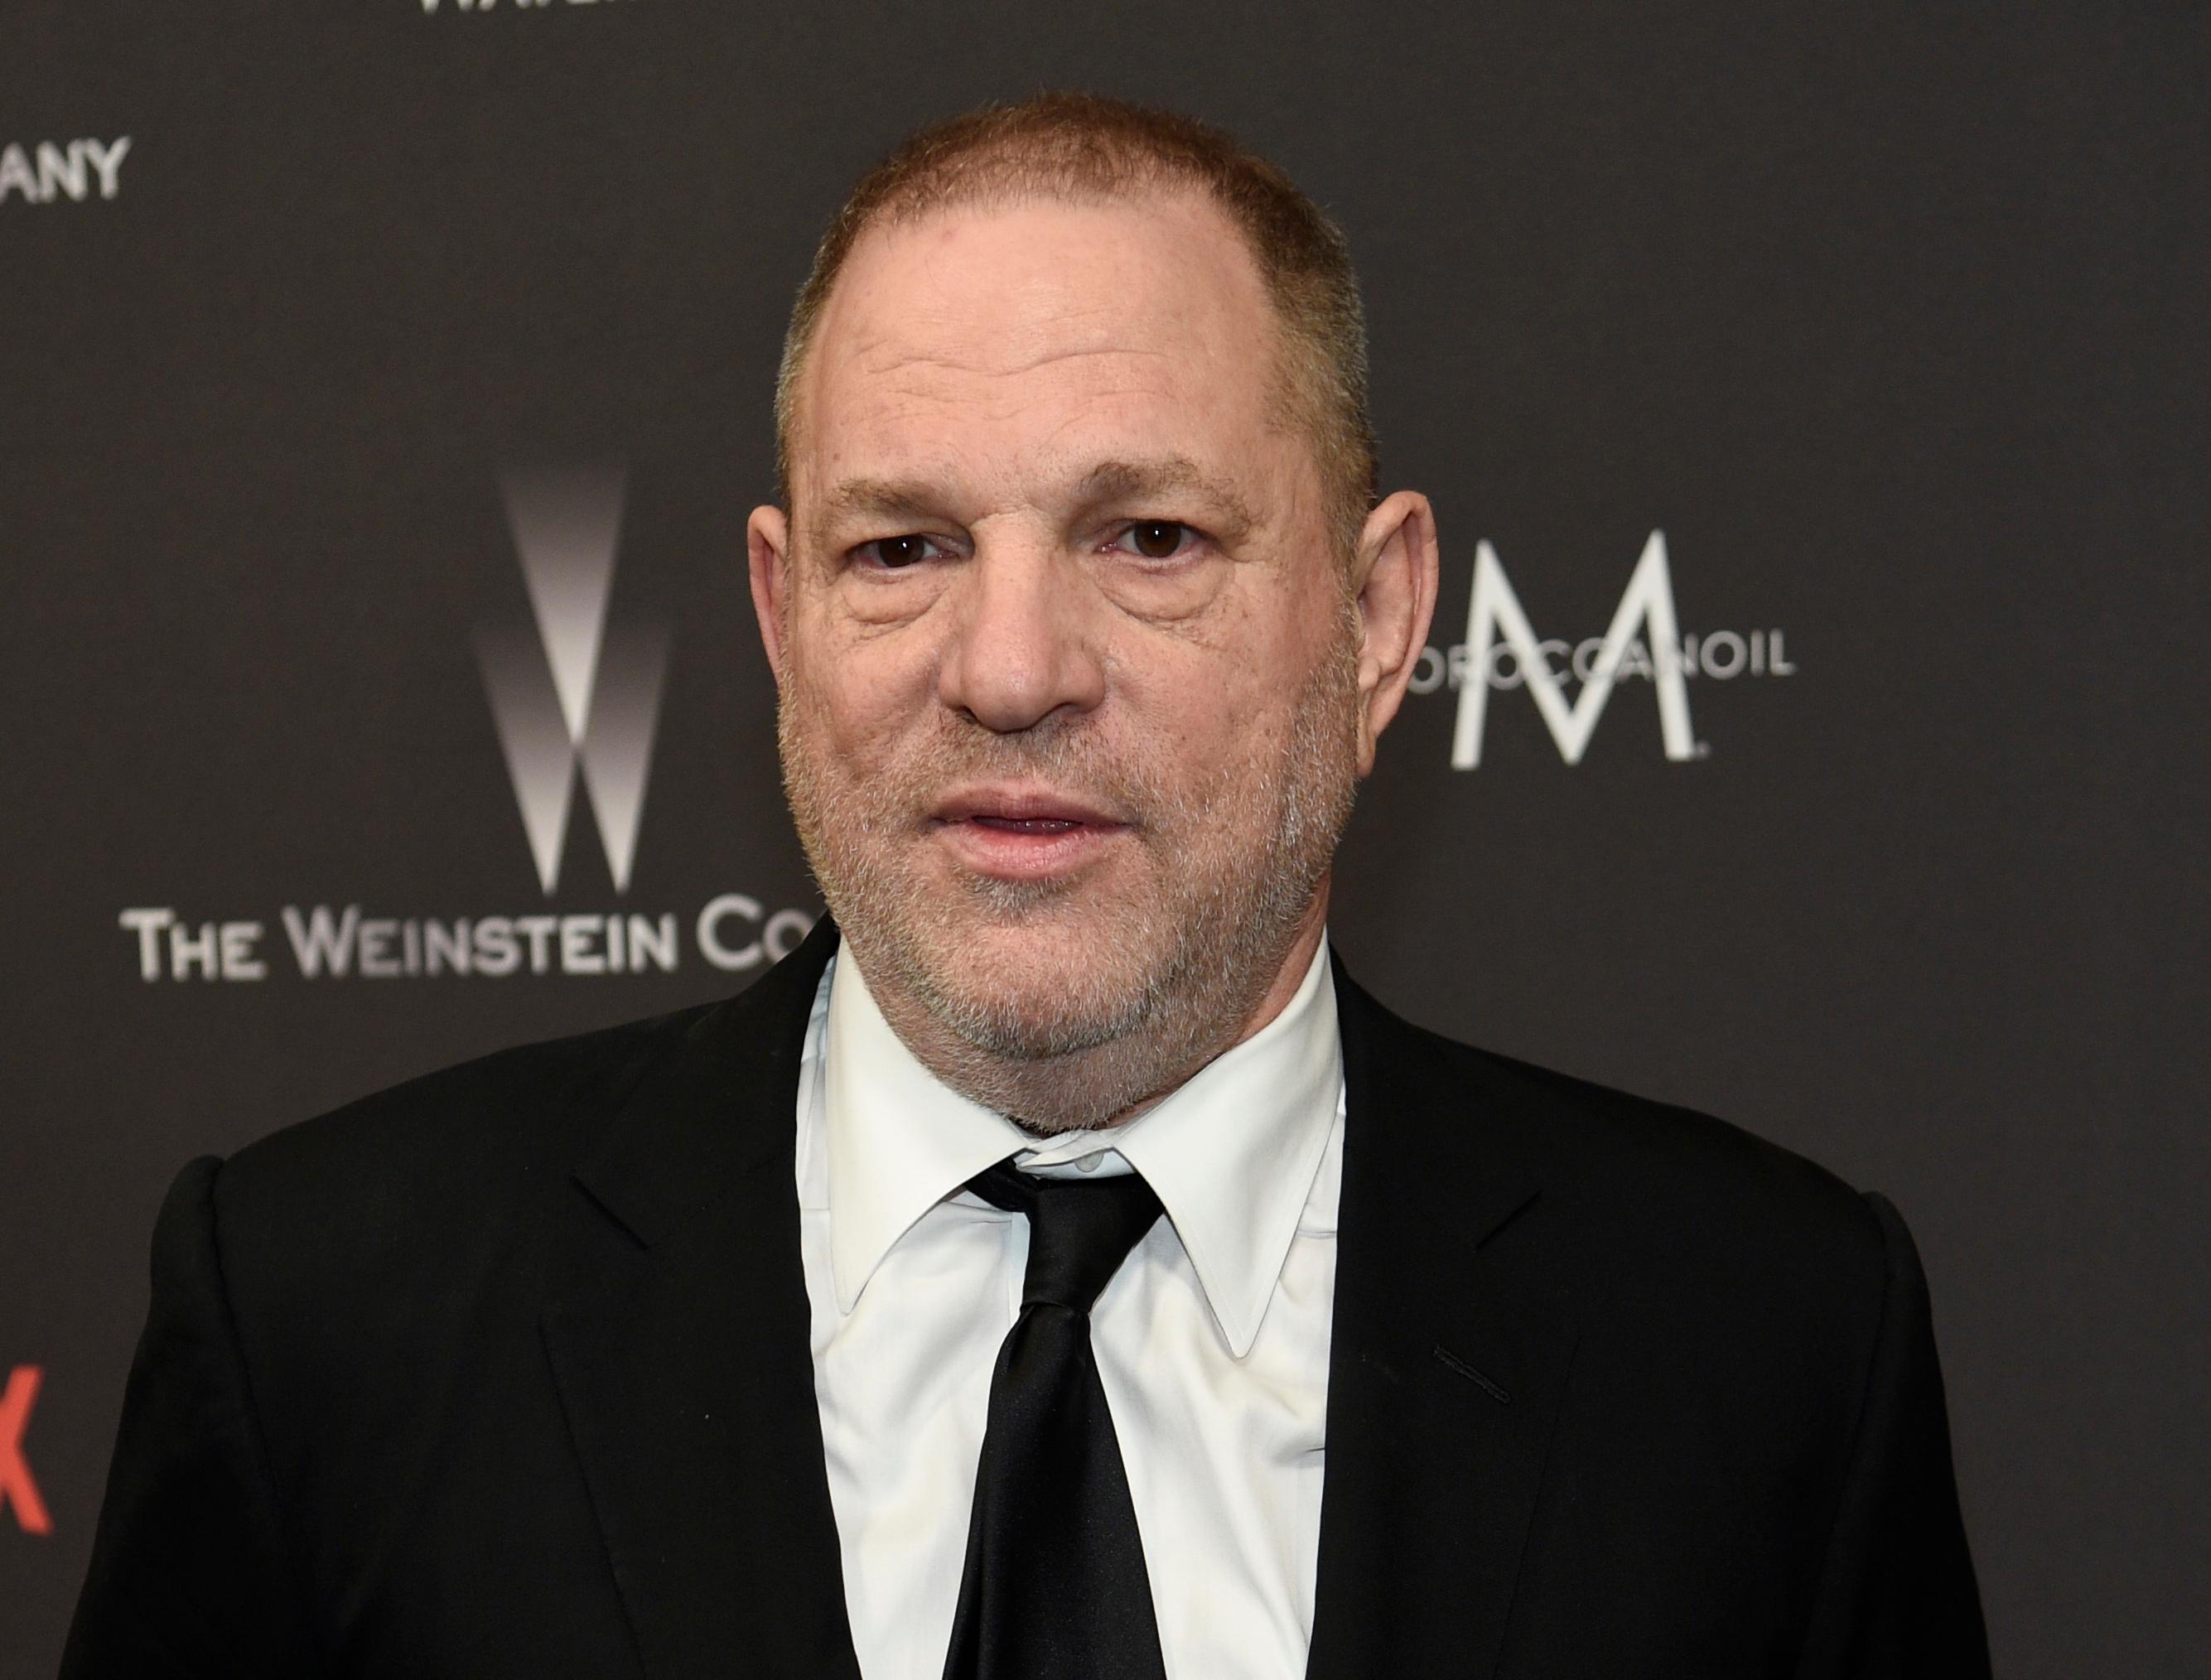 "FILE - In this Jan. 8, 2017, file photo, Harvey Weinstein arrives at The Weinstein Company and Netflix Golden Globes afterparty in Beverly Hills, Calif.  Weinstein is accused by dozens of women of sexual harassment or assault. He was fired by The Weinstein Co., expelled from various professional guilds and is under investigation by police departments in New York, London, Beverly Hills and Los Angeles. He denies all allegations of non-consensual sex, but he has apologized for causing ""a lot of pain"" with ""the way I've behaved with colleagues in the past."" (Photo by Chris Pizzello/Invision/AP, File)"